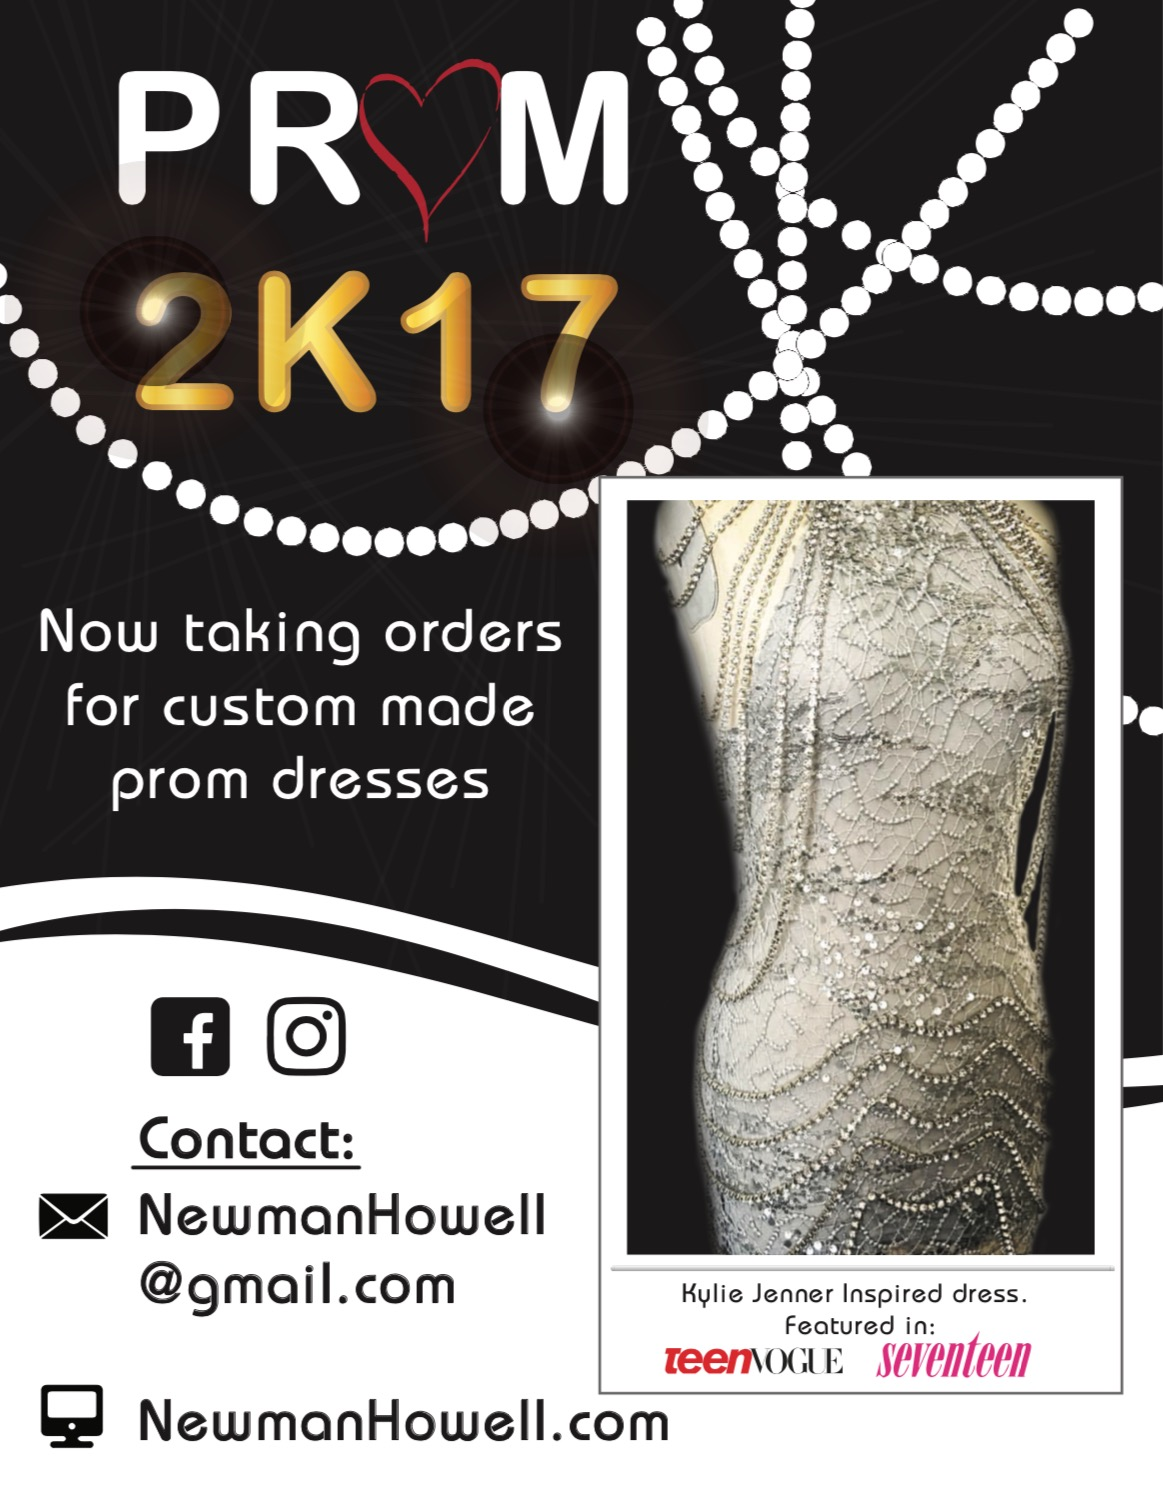 The New Flyer for Prom 2K17 Featuring The Kylie Jenner Inspired Dress!!!